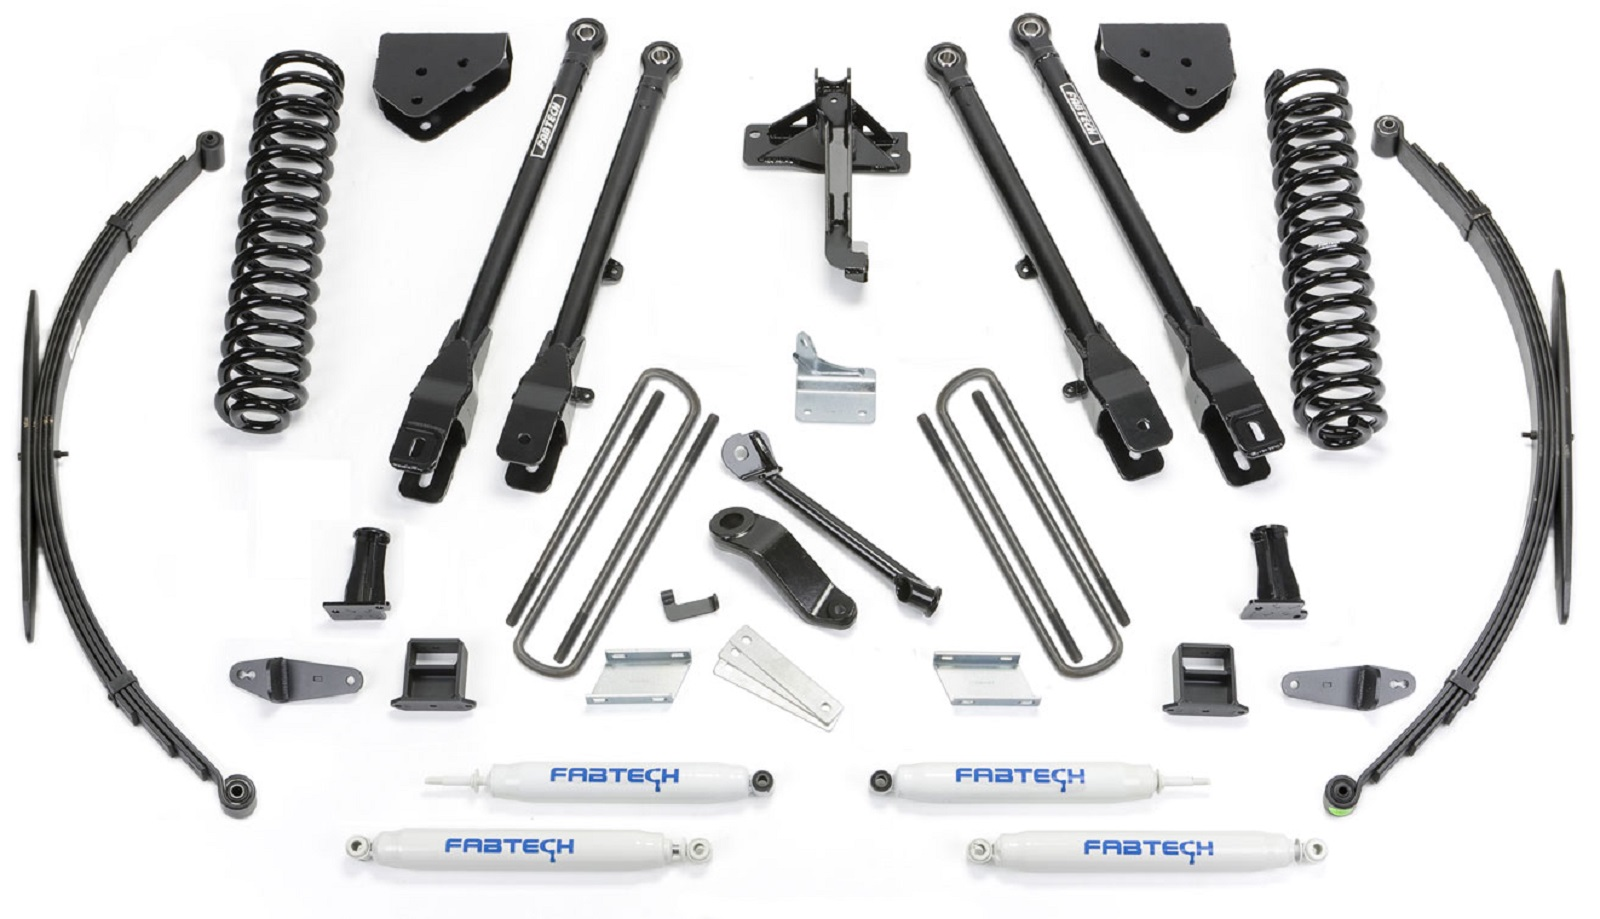 Fabtech K2129 8  4 Link System w/ Performance Shocks for Ford F250/F350/F450 4WD  sc 1 st  eBay & Fabtech K2129 8